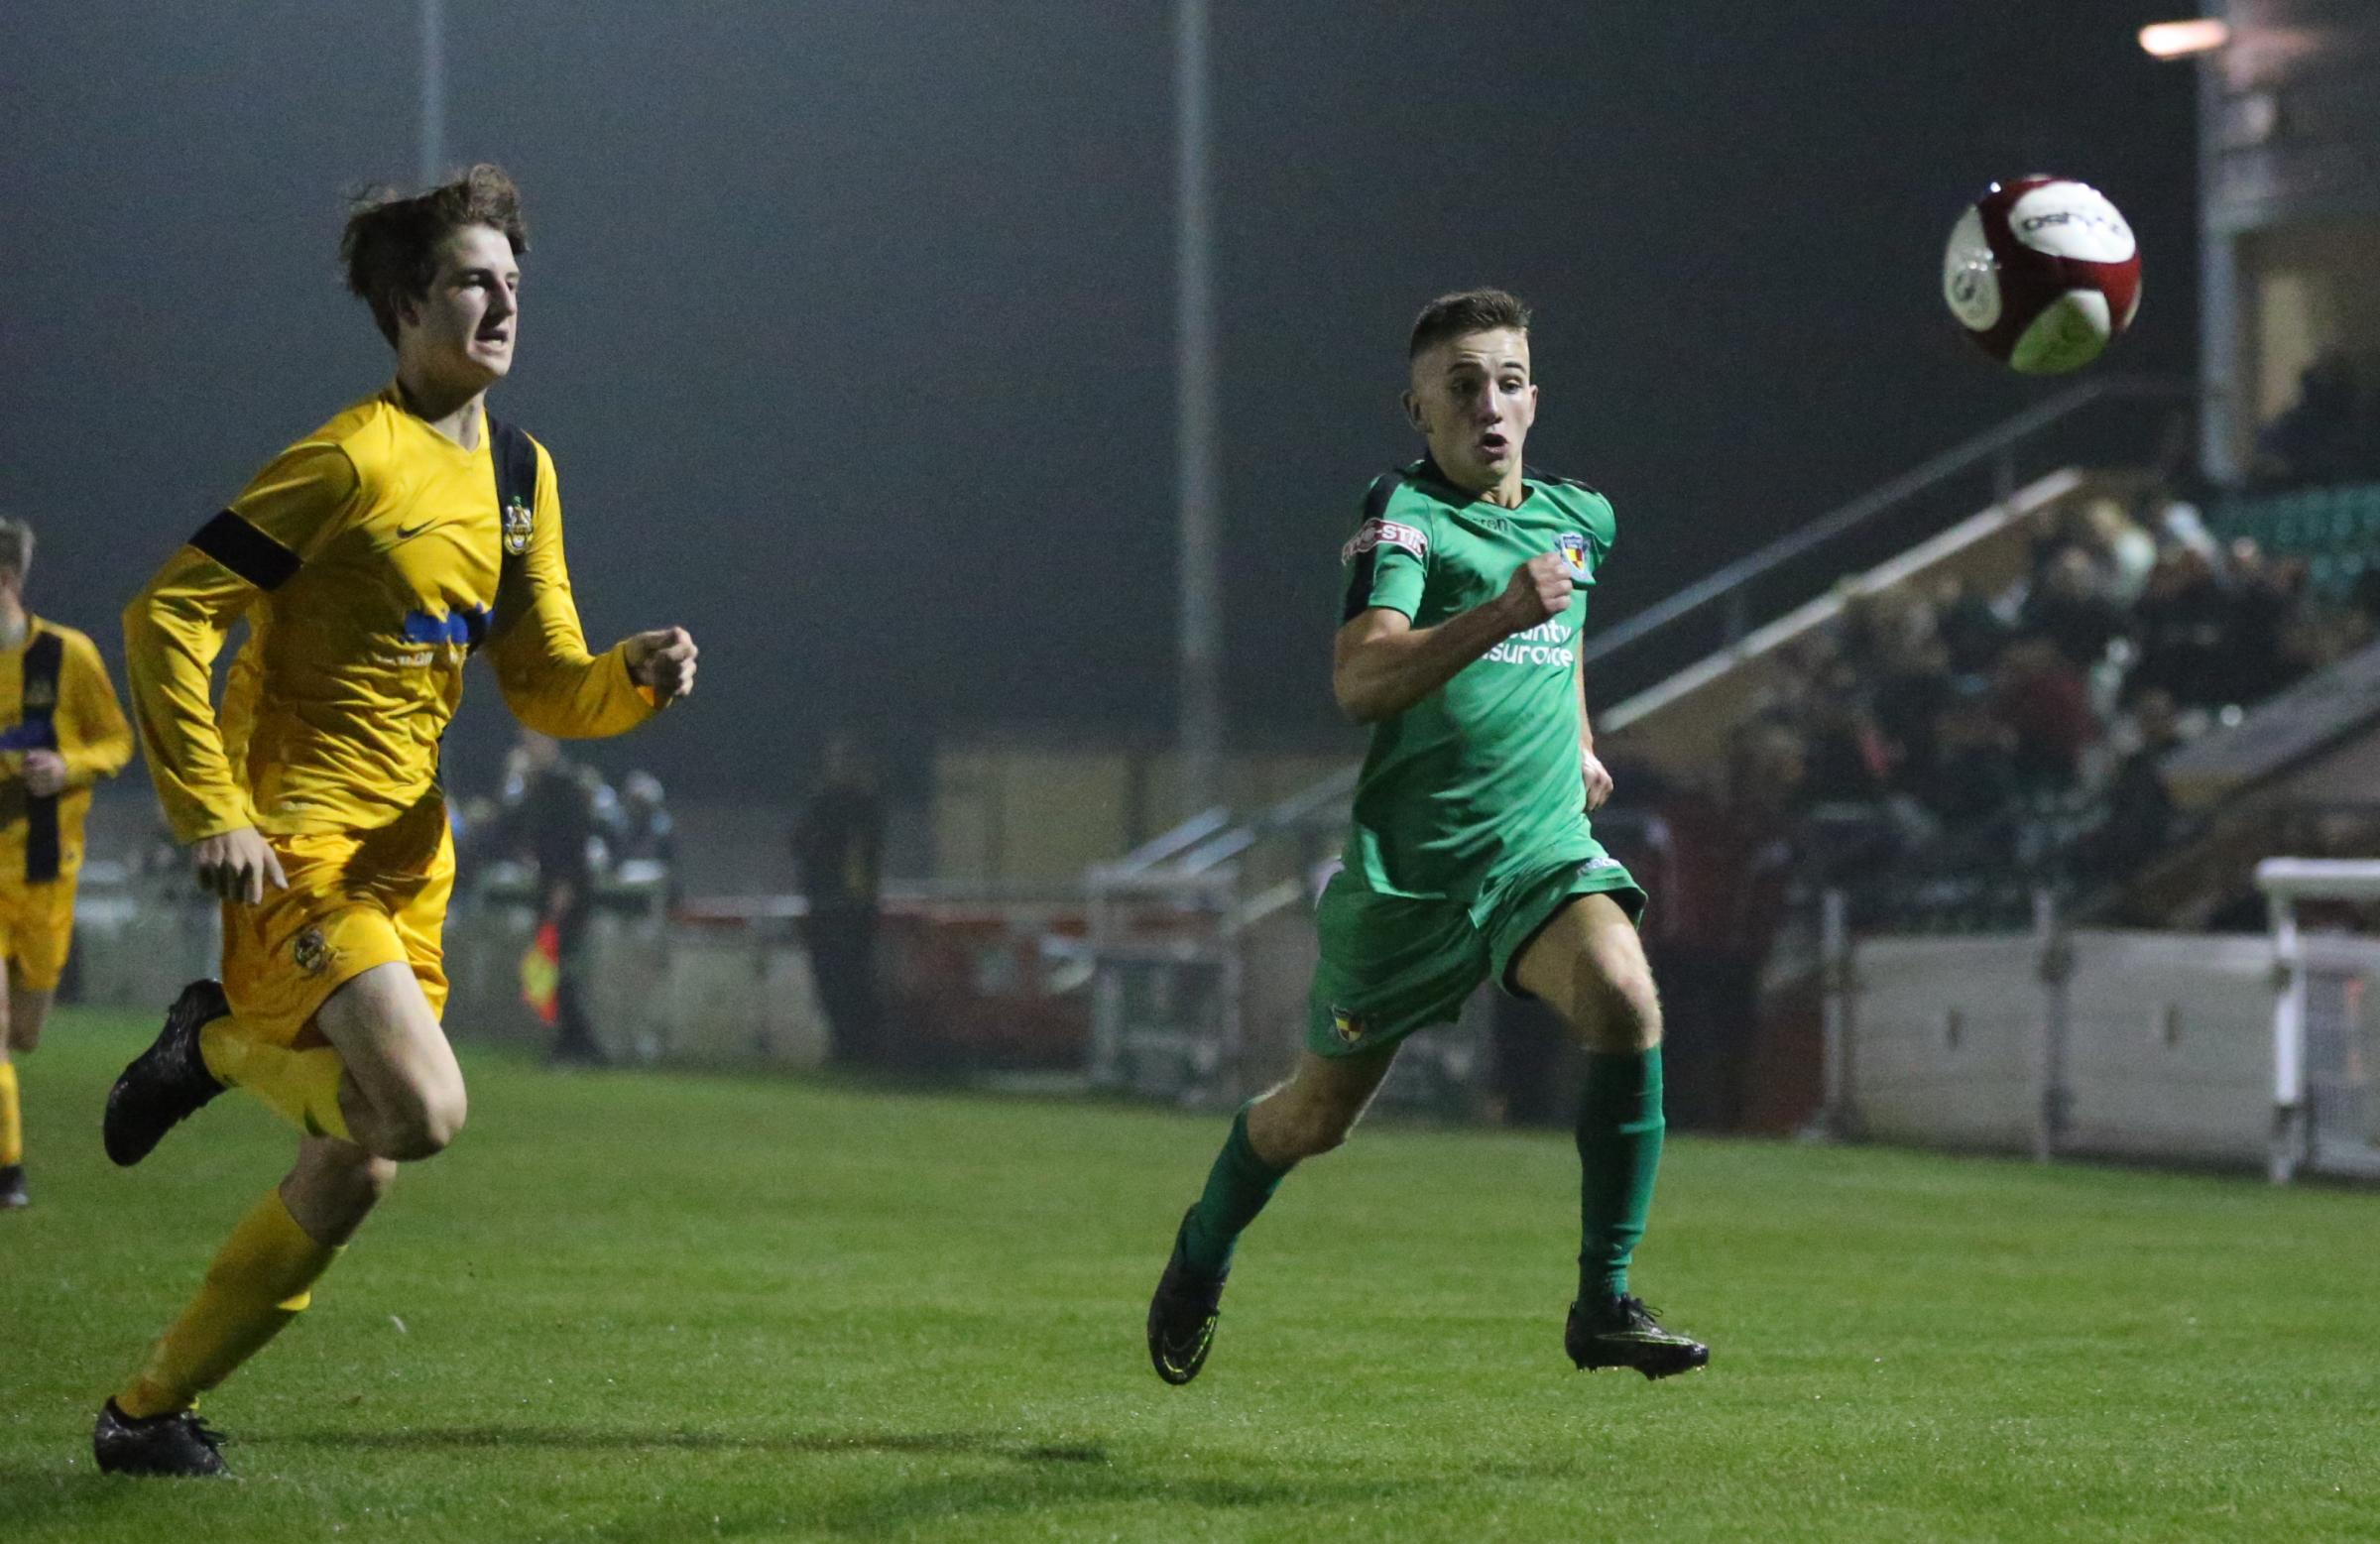 Jake Davies chases the ball for Nantwich's youth team in their FA Youth Cup win over Southport. Picture by Jonathan White